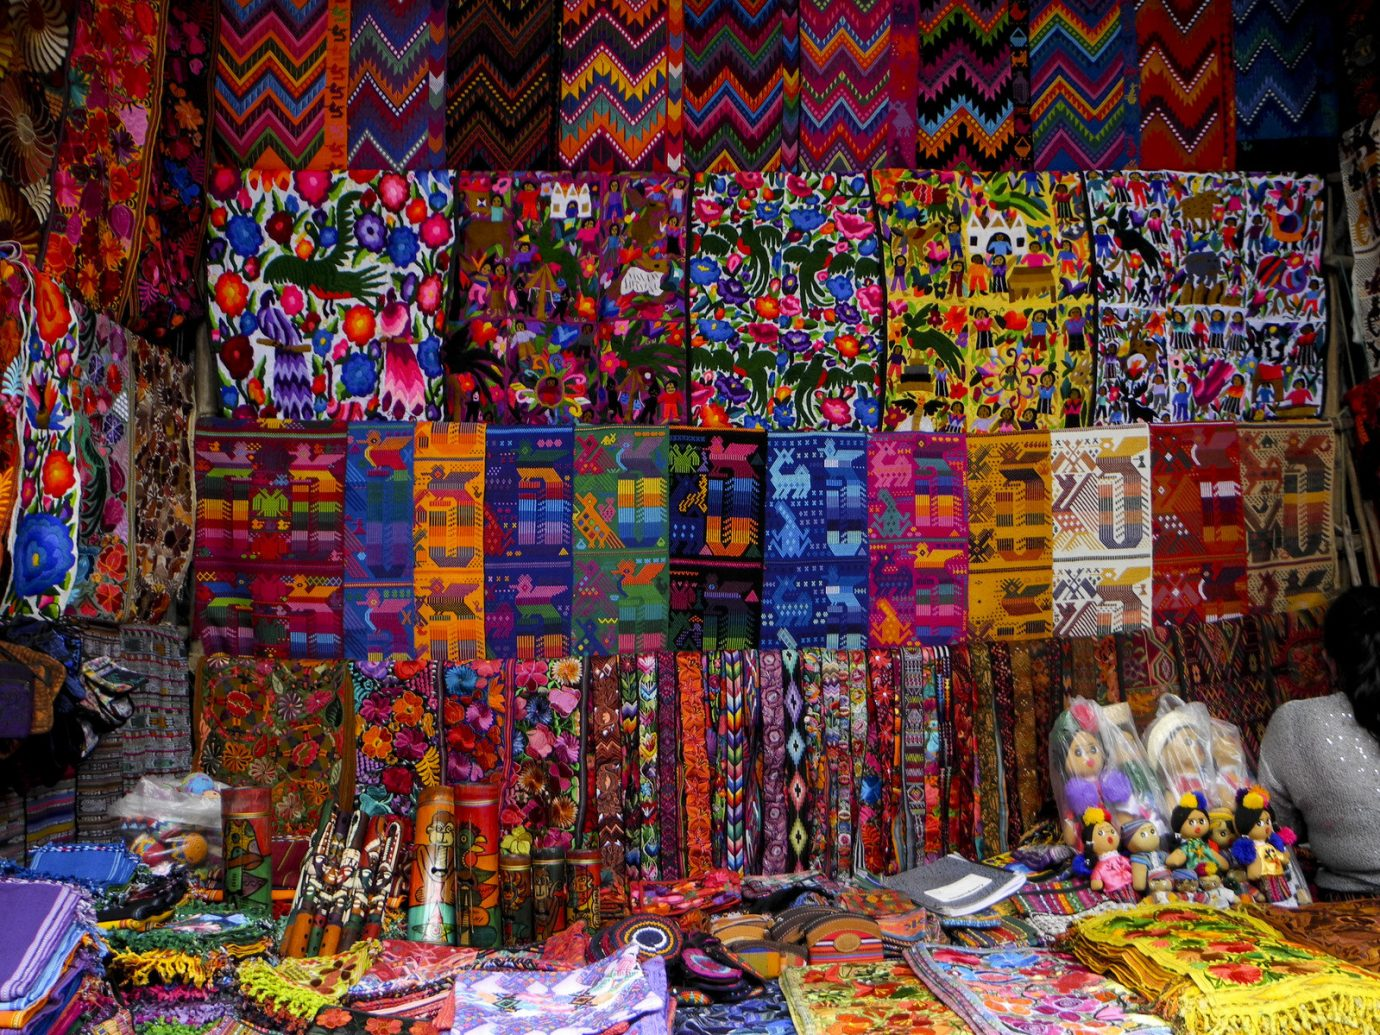 Trip Ideas color colorful bazaar many art market psychedelic art colors store decorated colored sale